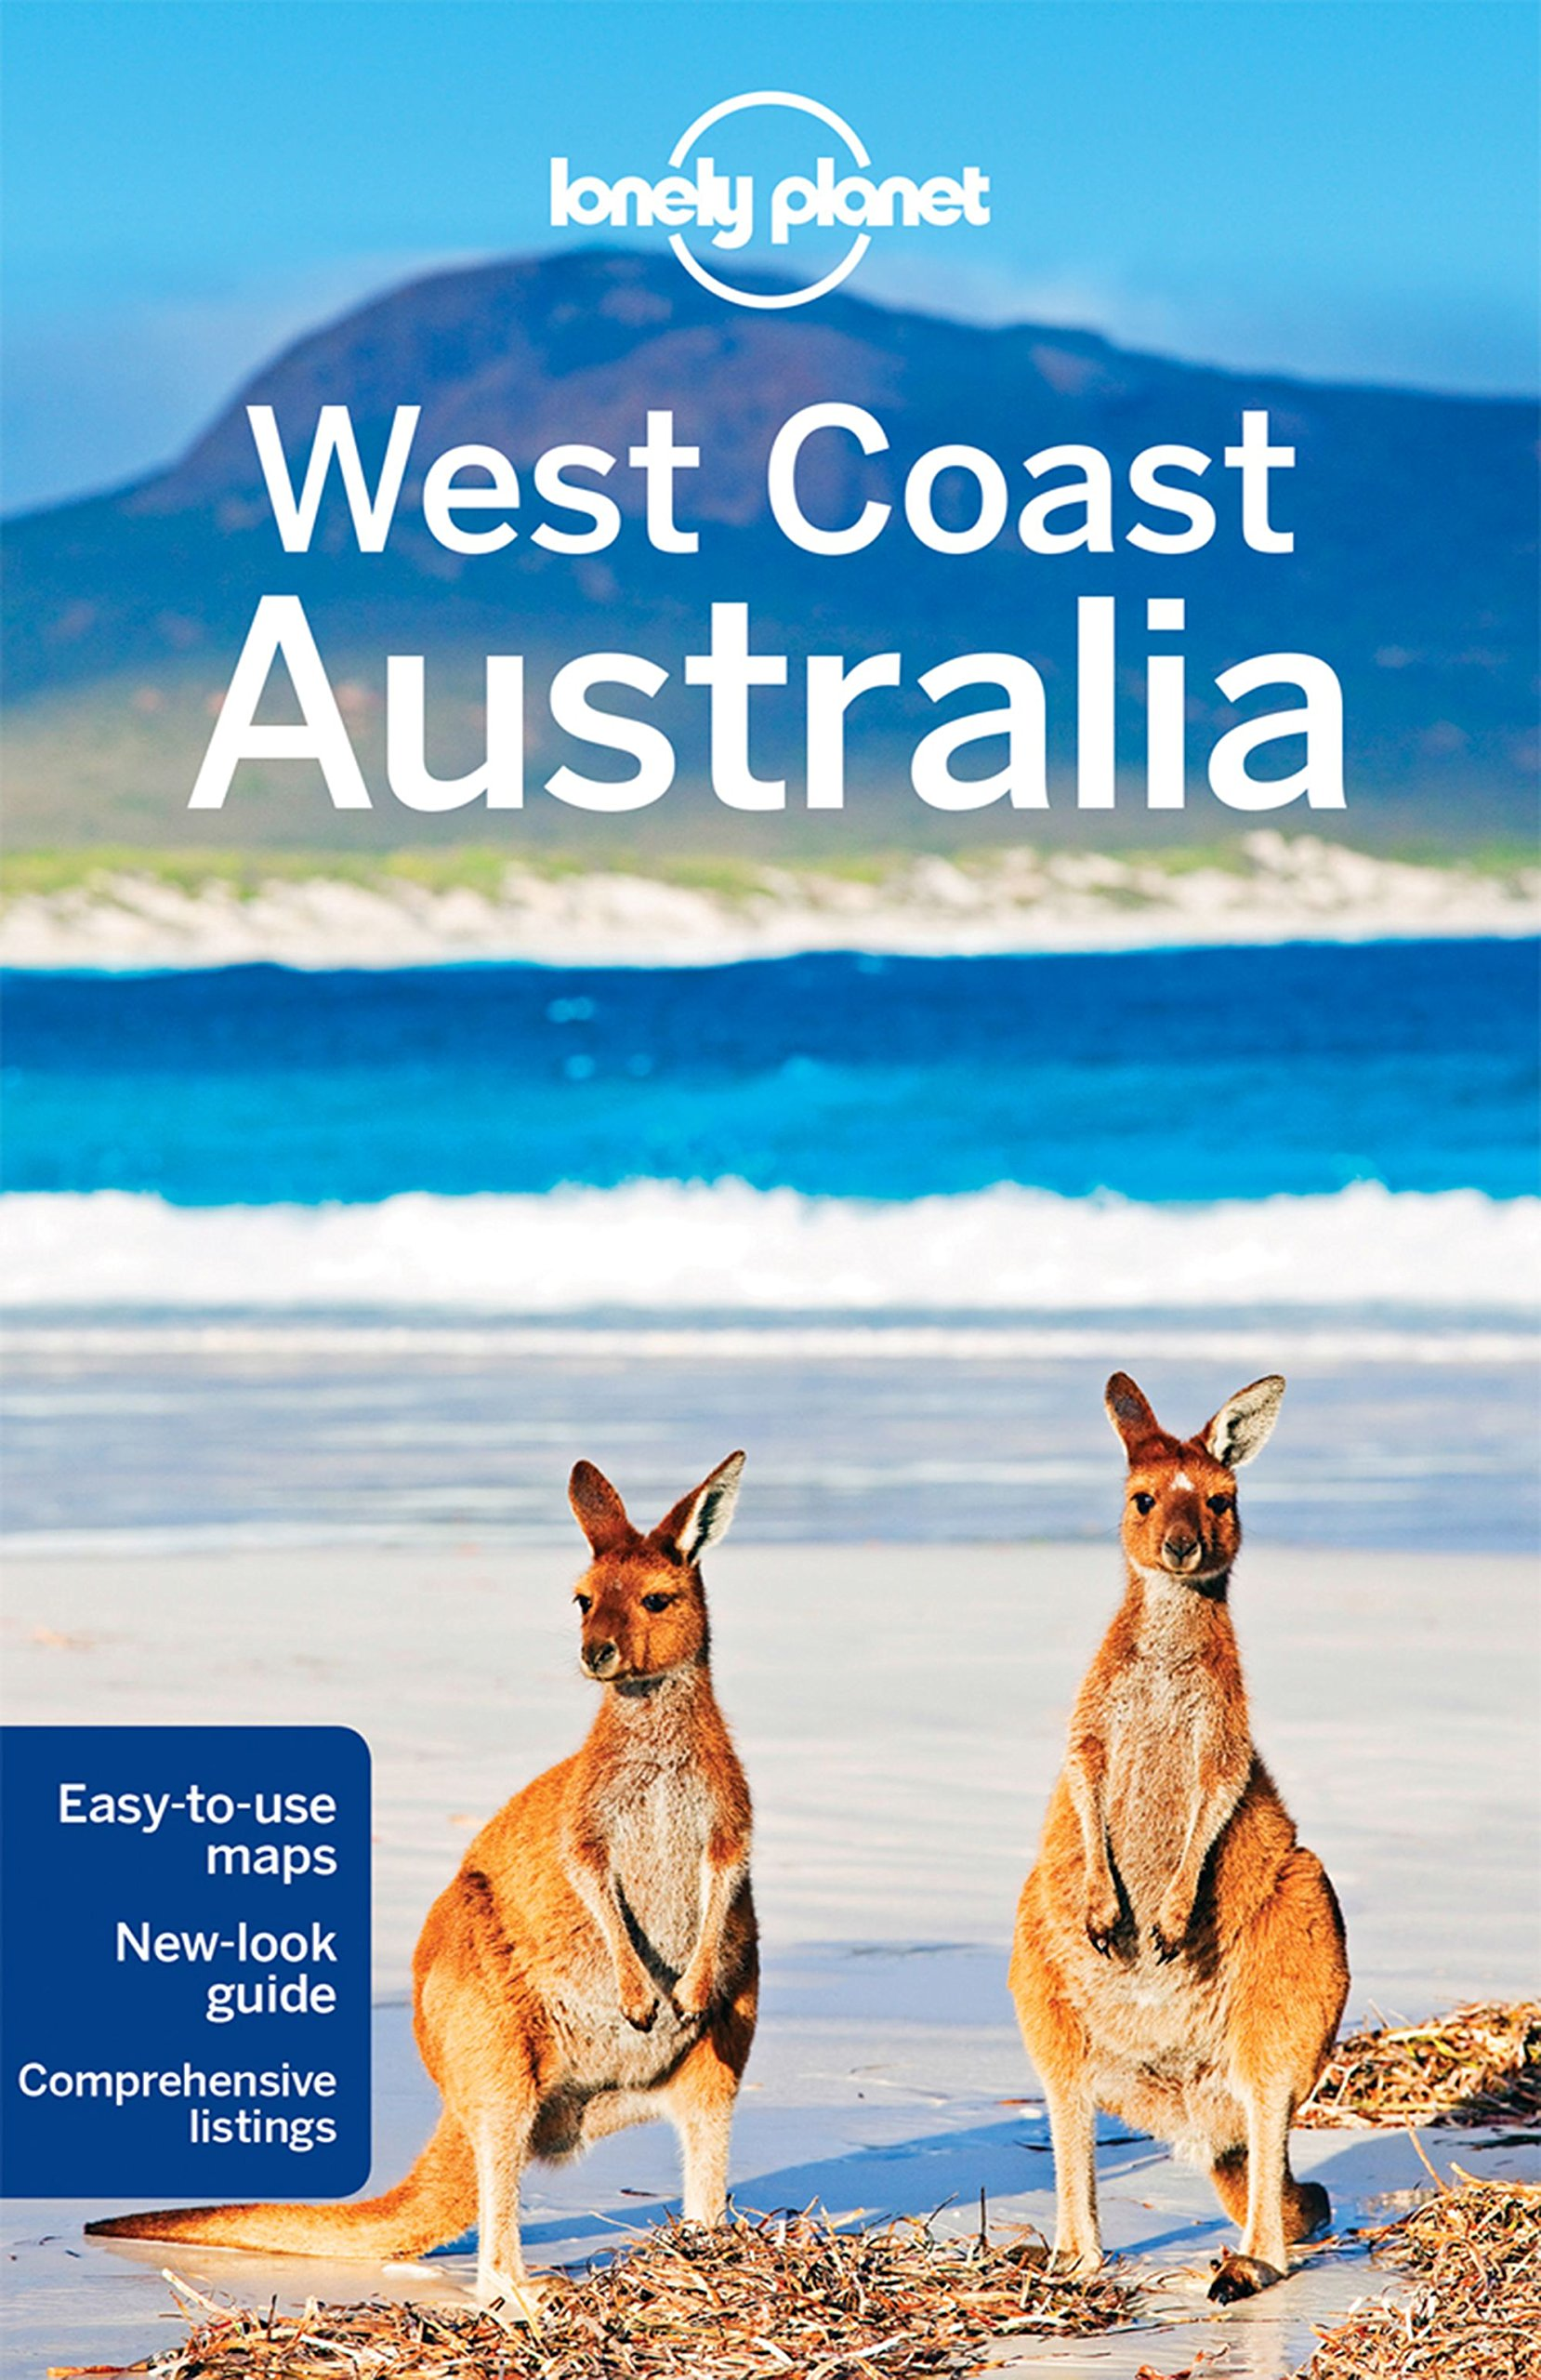 Australia West Coast Map.Lonely Planet West Coast Australia Travel Guide Lonely Planet